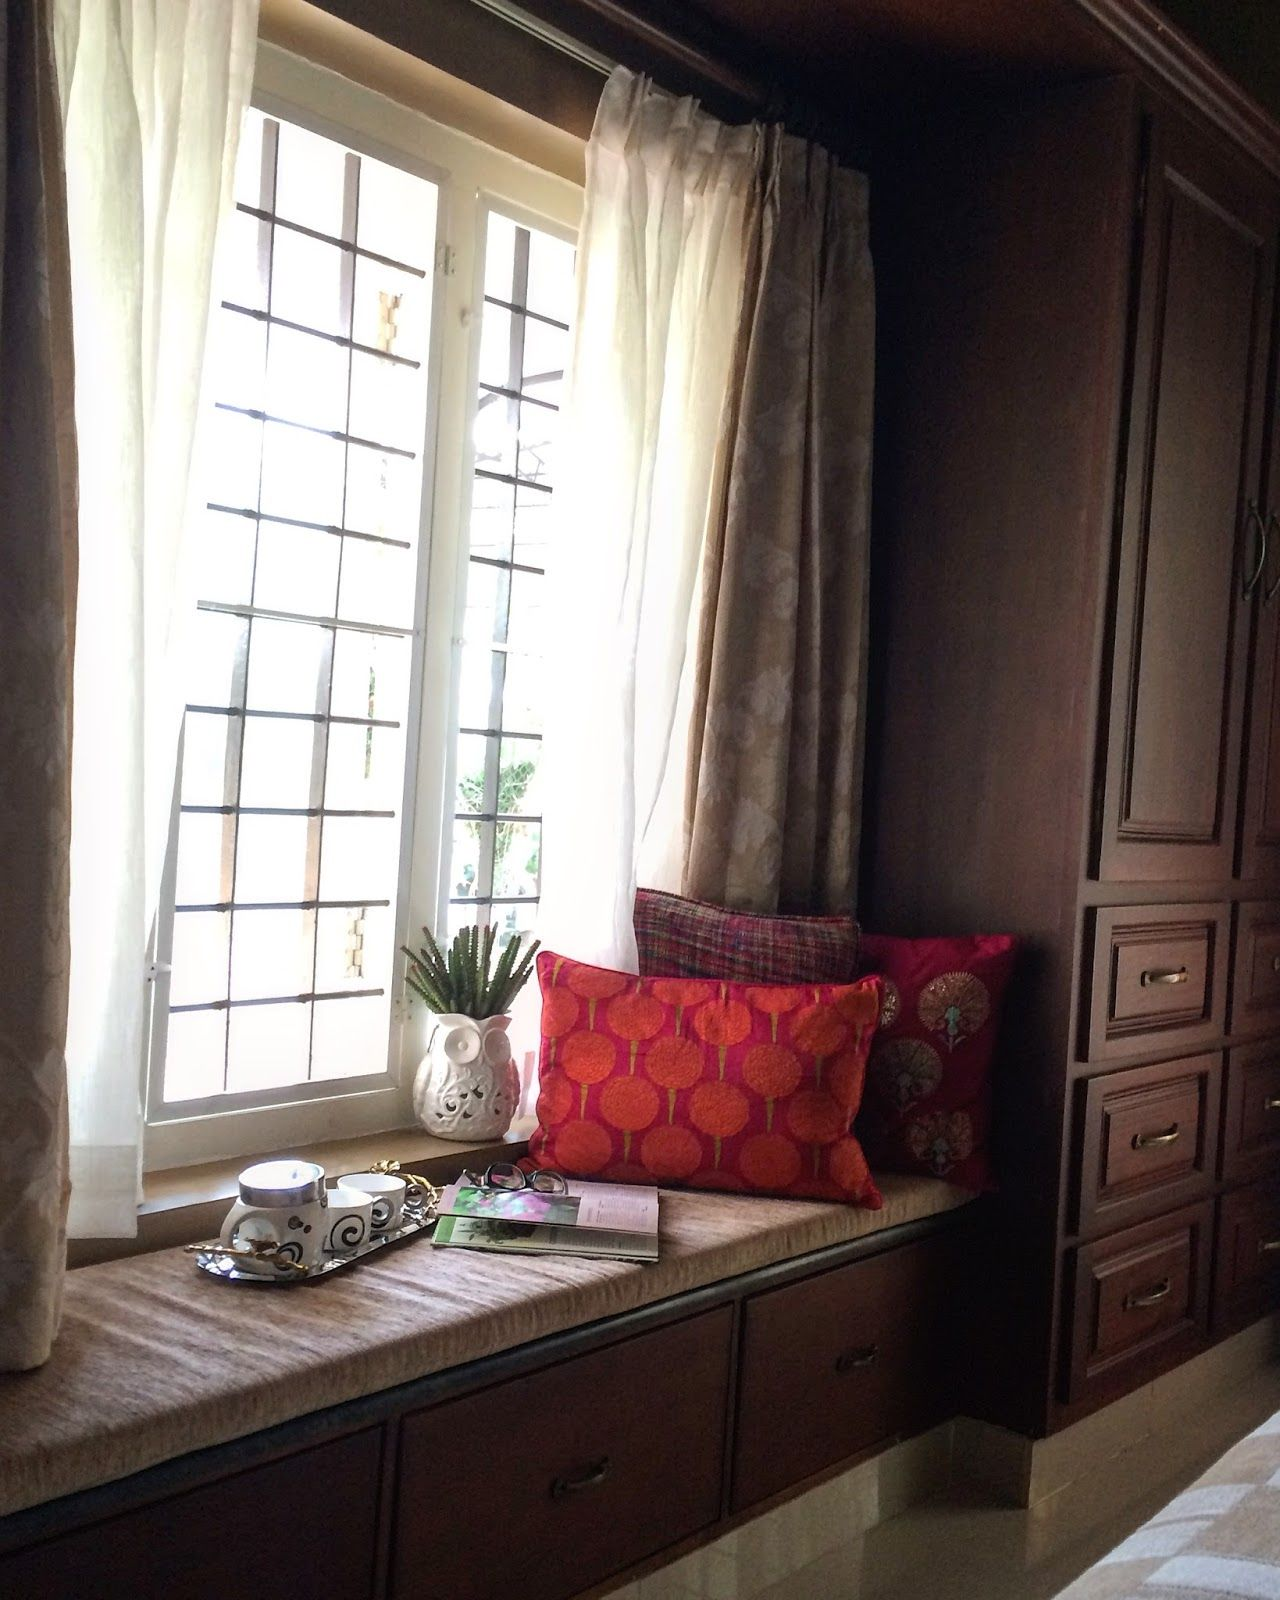 12 Spaces Inspired By India: Convert The Dead Space By Your Window Into A Welcoming